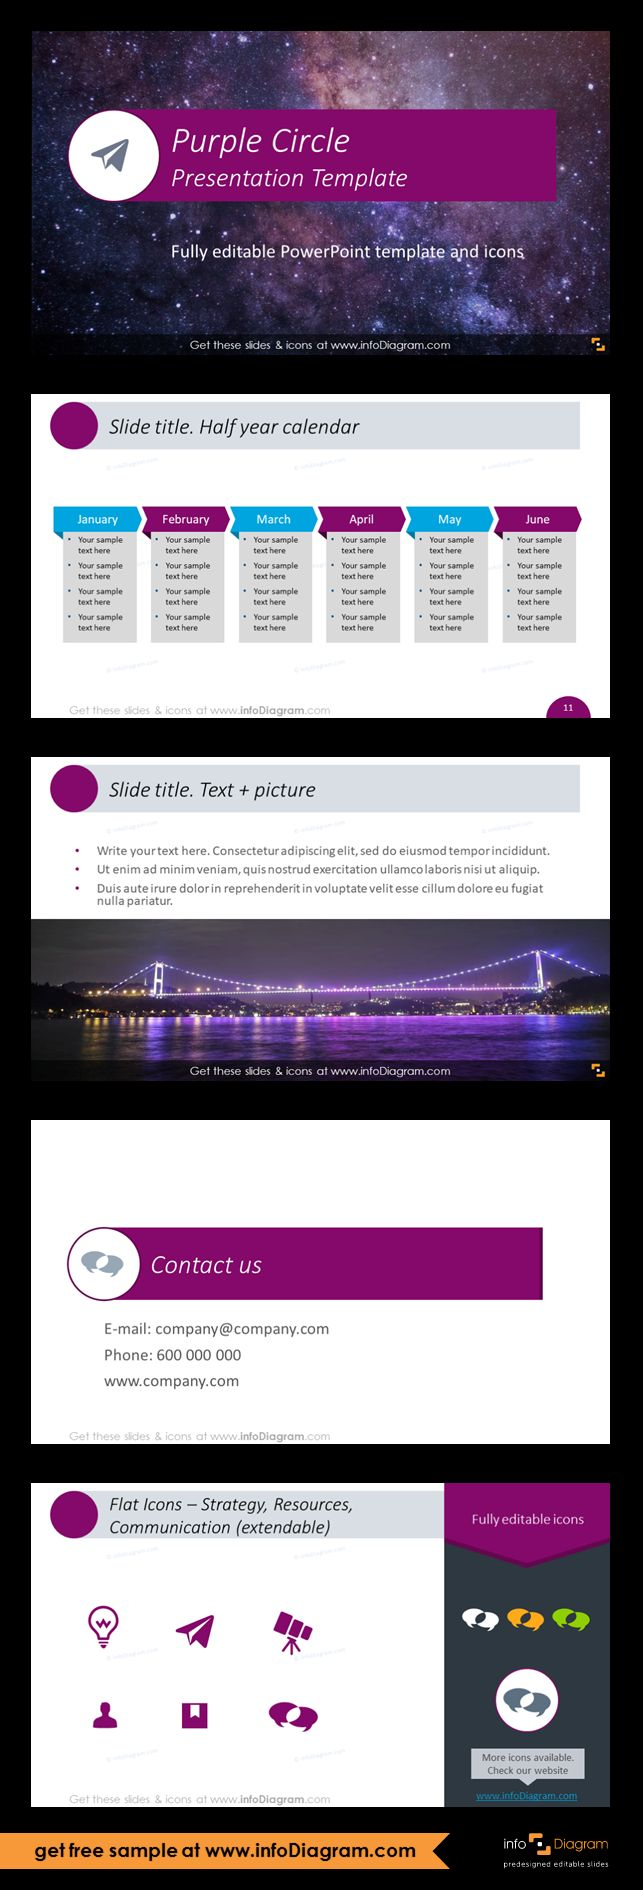 This PPTX template contains set of a dosen practical slide layouts (e.g. for title slide, section divider...) and a master slide with pre-designed graphical background - elegant purple circle ribbon. Half a year calendar for pointing main activities and events, slide with text and picture, contact information, strategy and communication icons. The template is fully editable, so you can adapt the colors to your brand preferences.